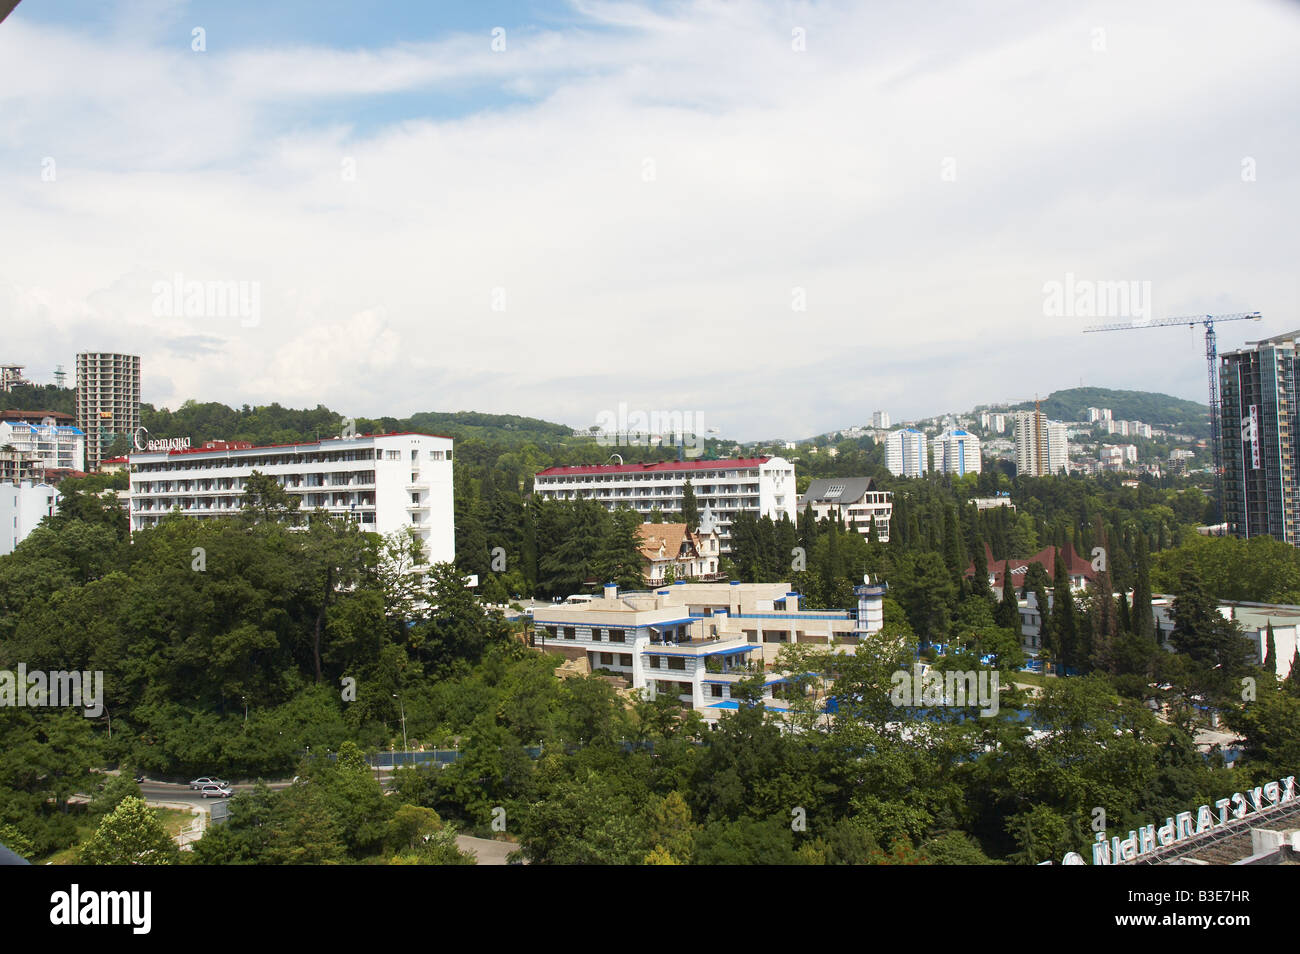 Hotel in a city of Sochi - Stock Image